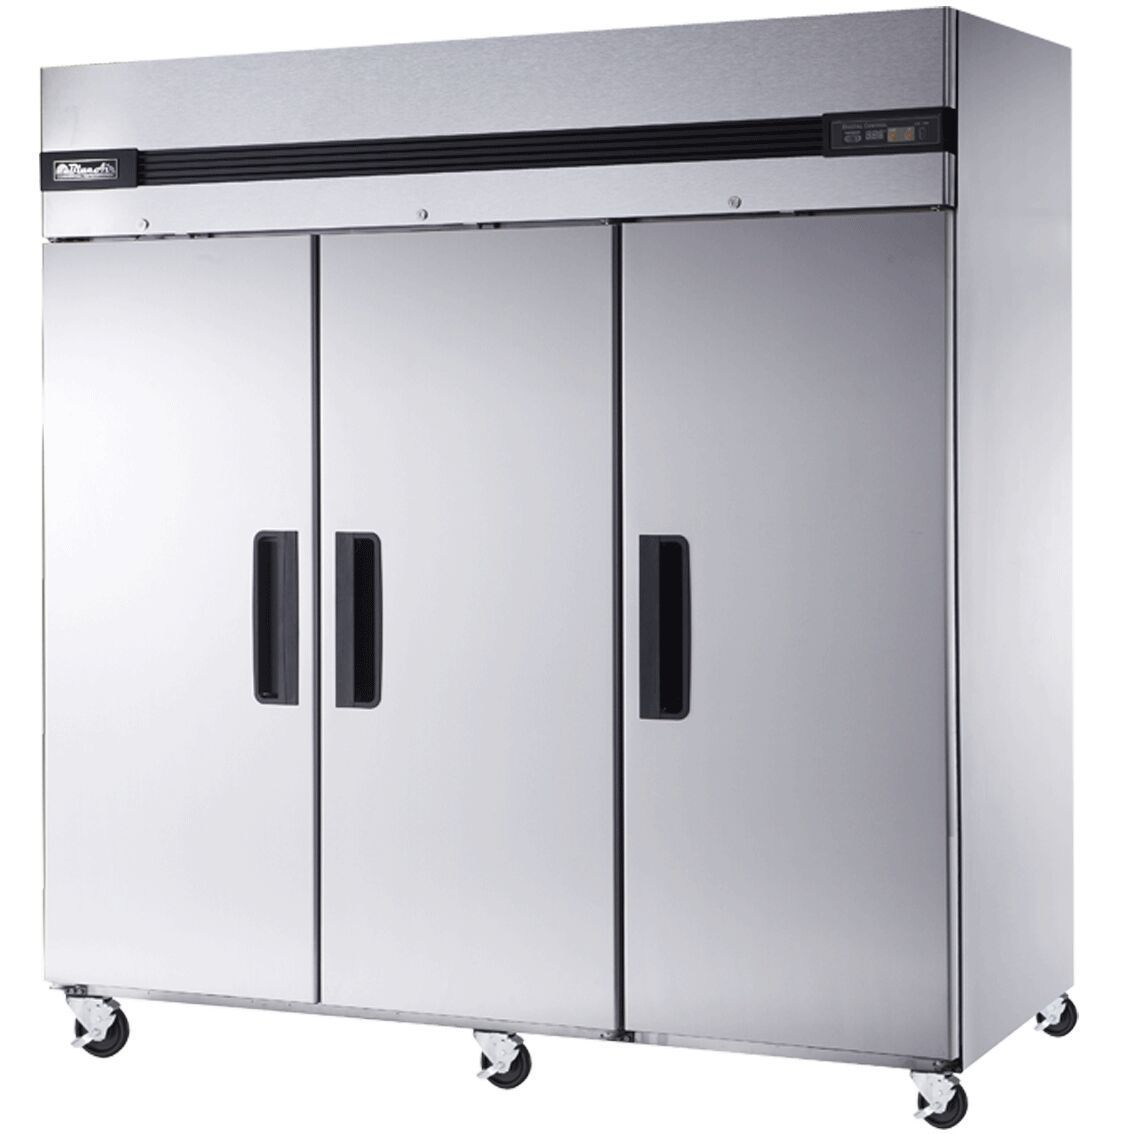 Solid Door Refrigerators & Freezers